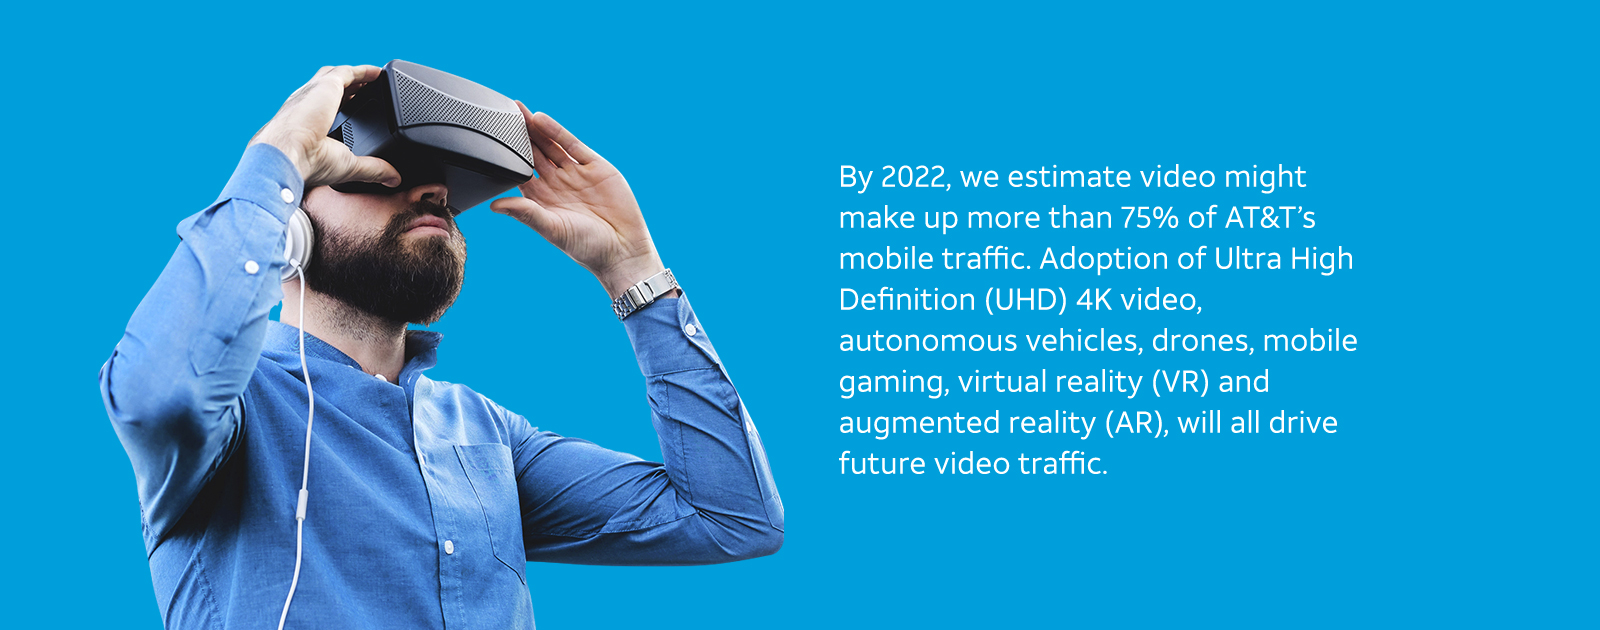 By 2022, we estimate video might make up more than 75% of AT&T's mobile traffic. Adoption of Ultra High Definition (UHD) 4K video, autonomous vehicles, drones, mobile gaming, virtual reality (VR) and augmented reality (AR), will all drive future video traffic.